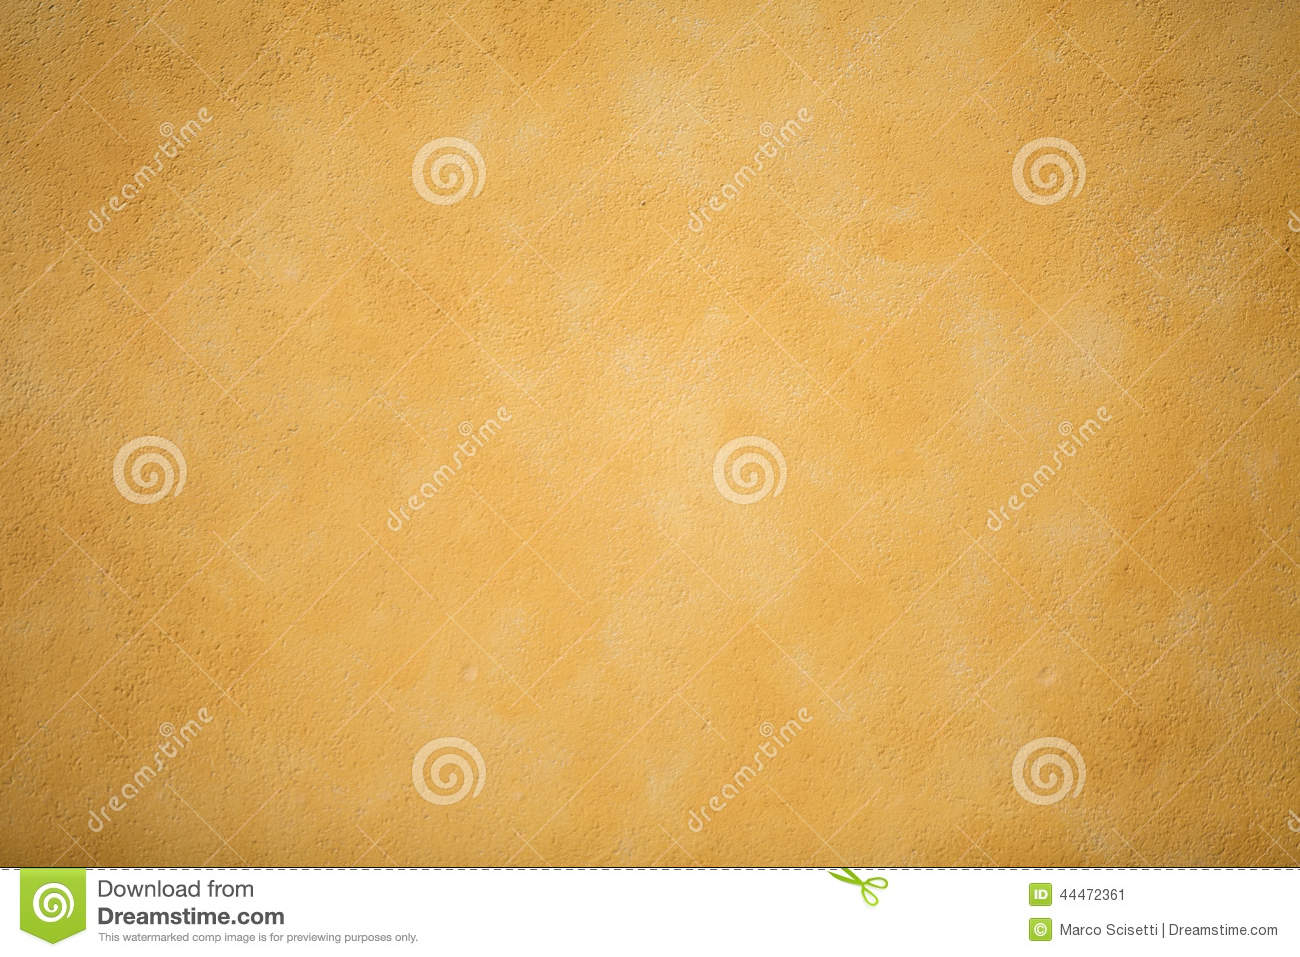 A Yellow Decorative Plaster Wall Stock Image - Image of texture ...